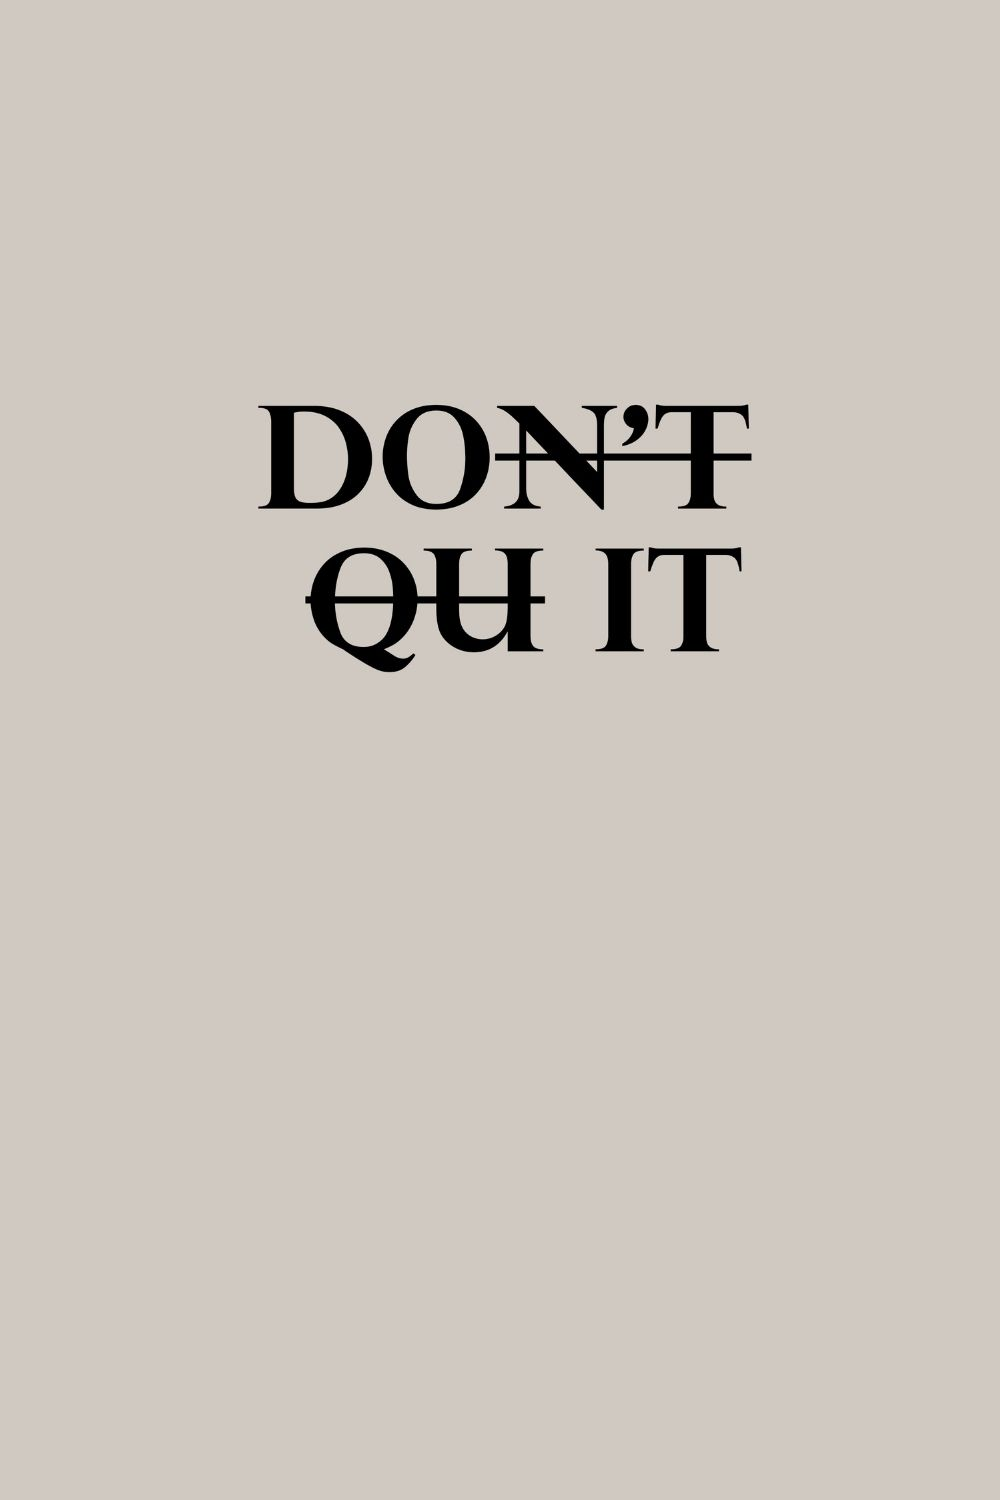 Monday Motivation Quote with image: Don't quit, do it. Happy Monday!